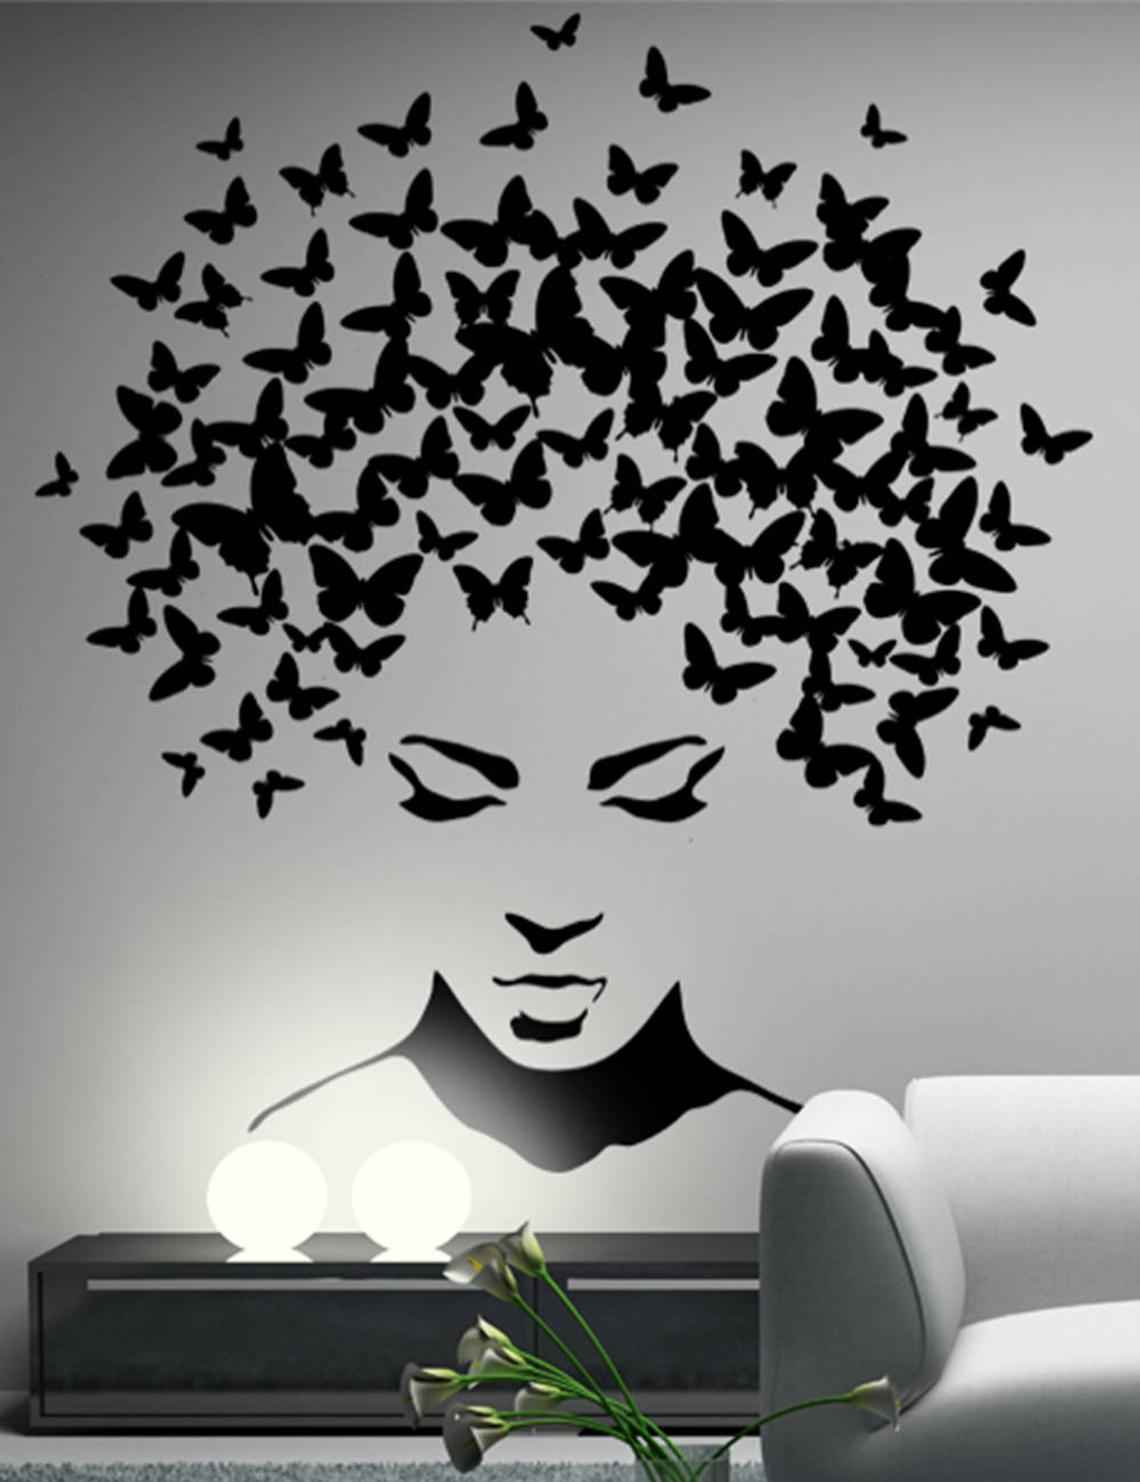 Butterfly Woman Head Wall Decal Butterfly Wall Decoration Butterfly Wall Sticker Living Room Bedroom Art Deco Home Decoration 34